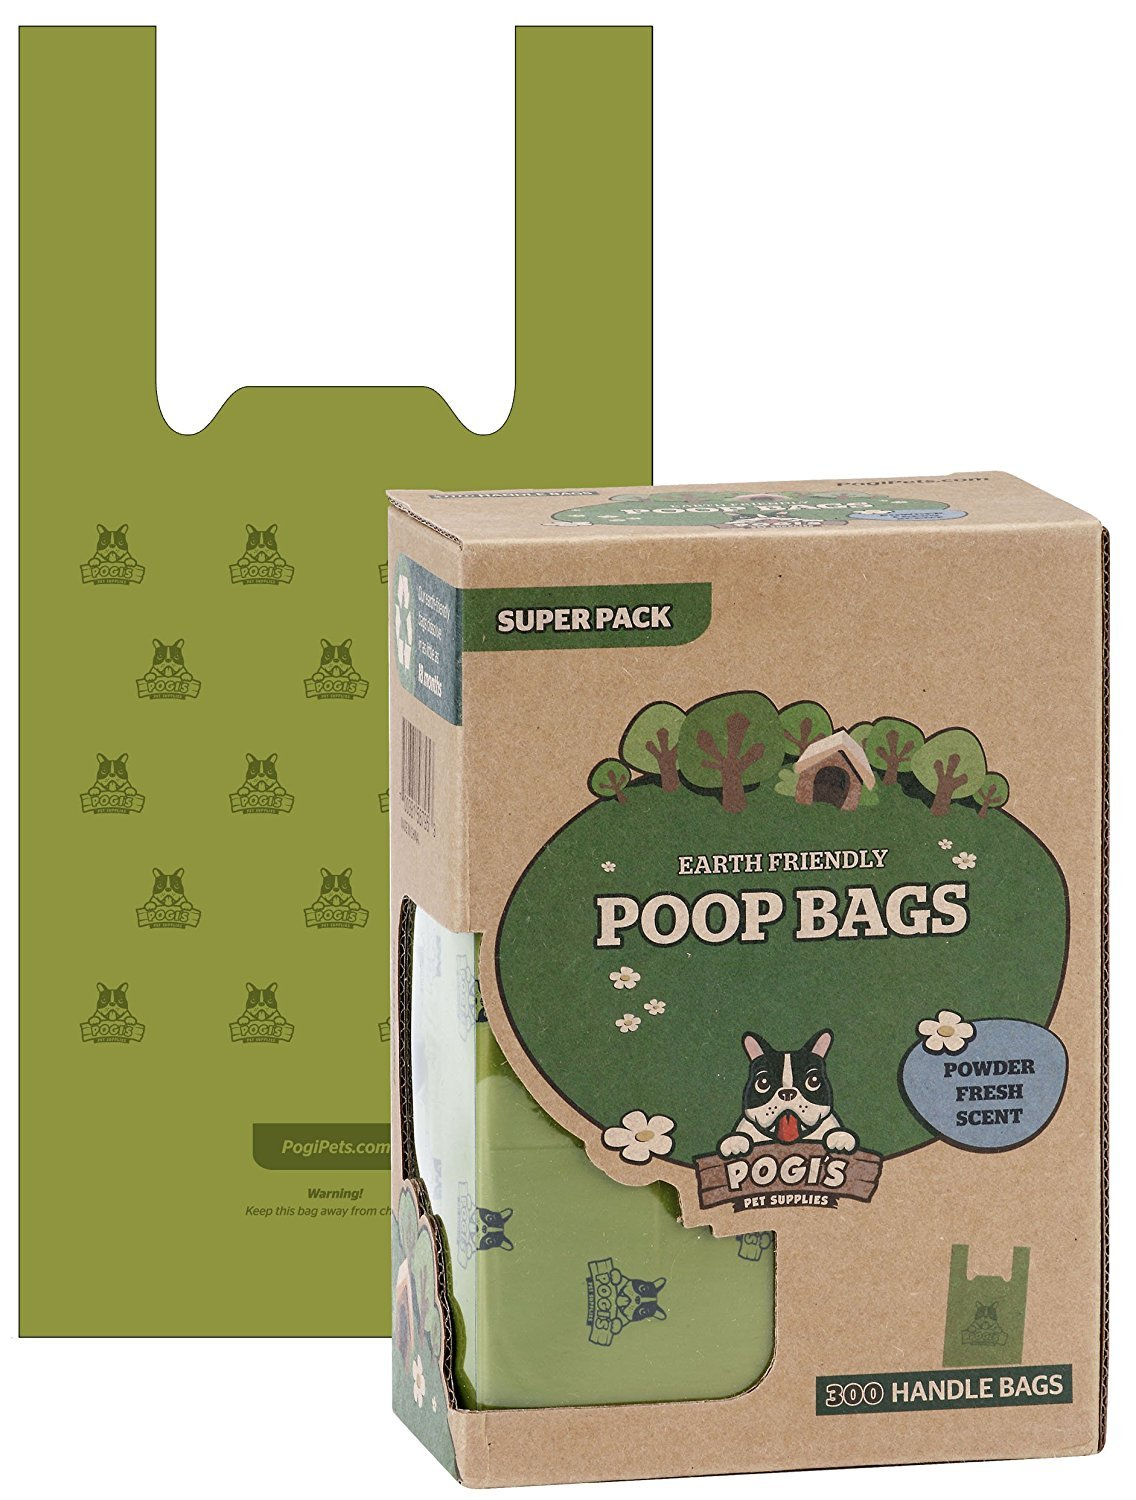 Pogis Pet Supplies Scented Poop Bags with Easy-Tie Handles, 300 count